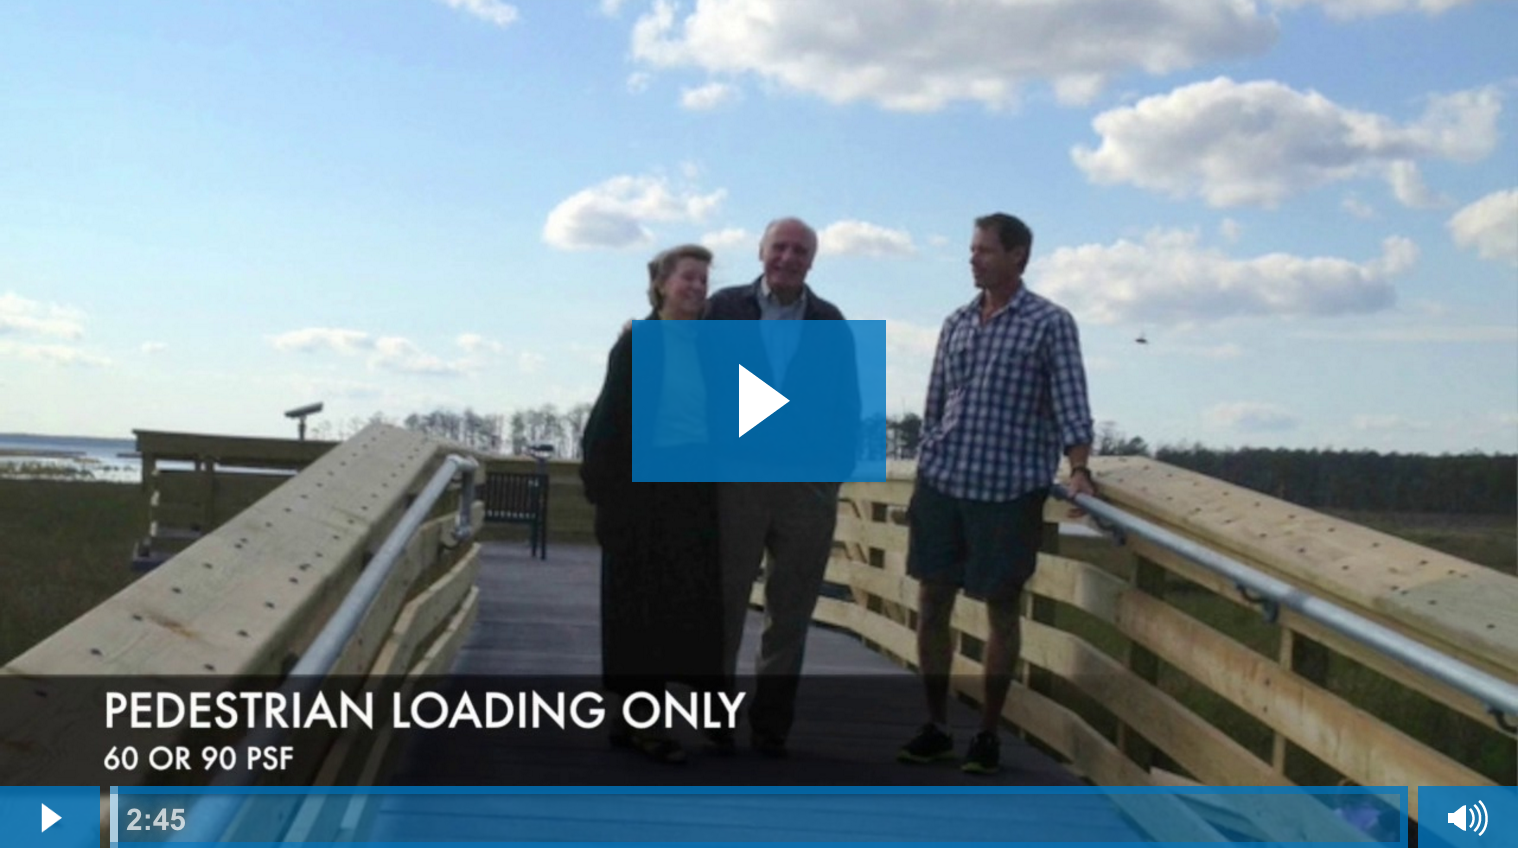 Boardwalk Design Process - How to Evaluate Live Loading Requirements